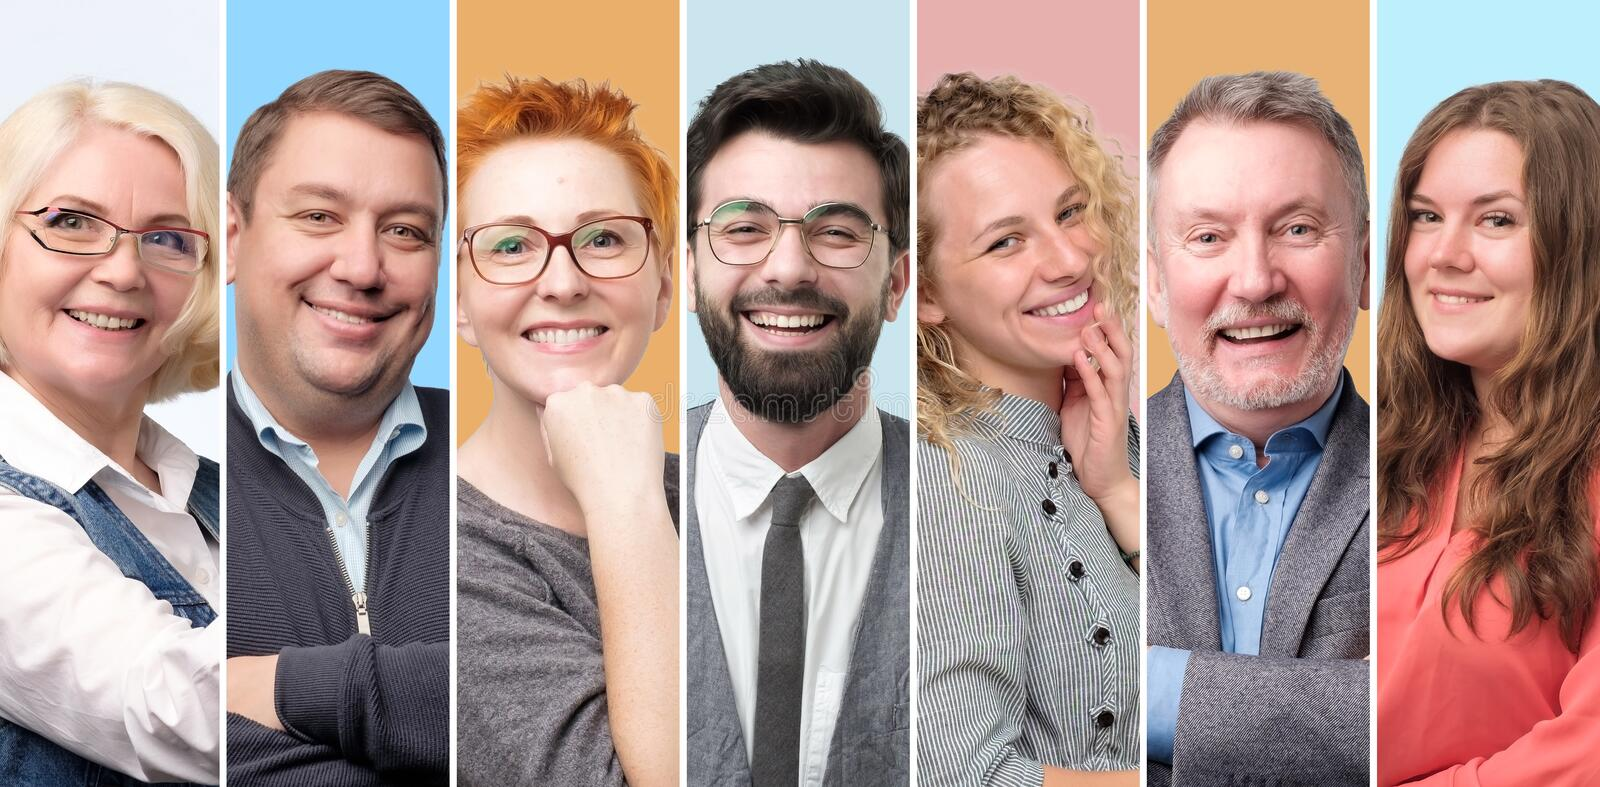 Collection of avatar of people. Young and senior men and women faces smiling royalty free stock image